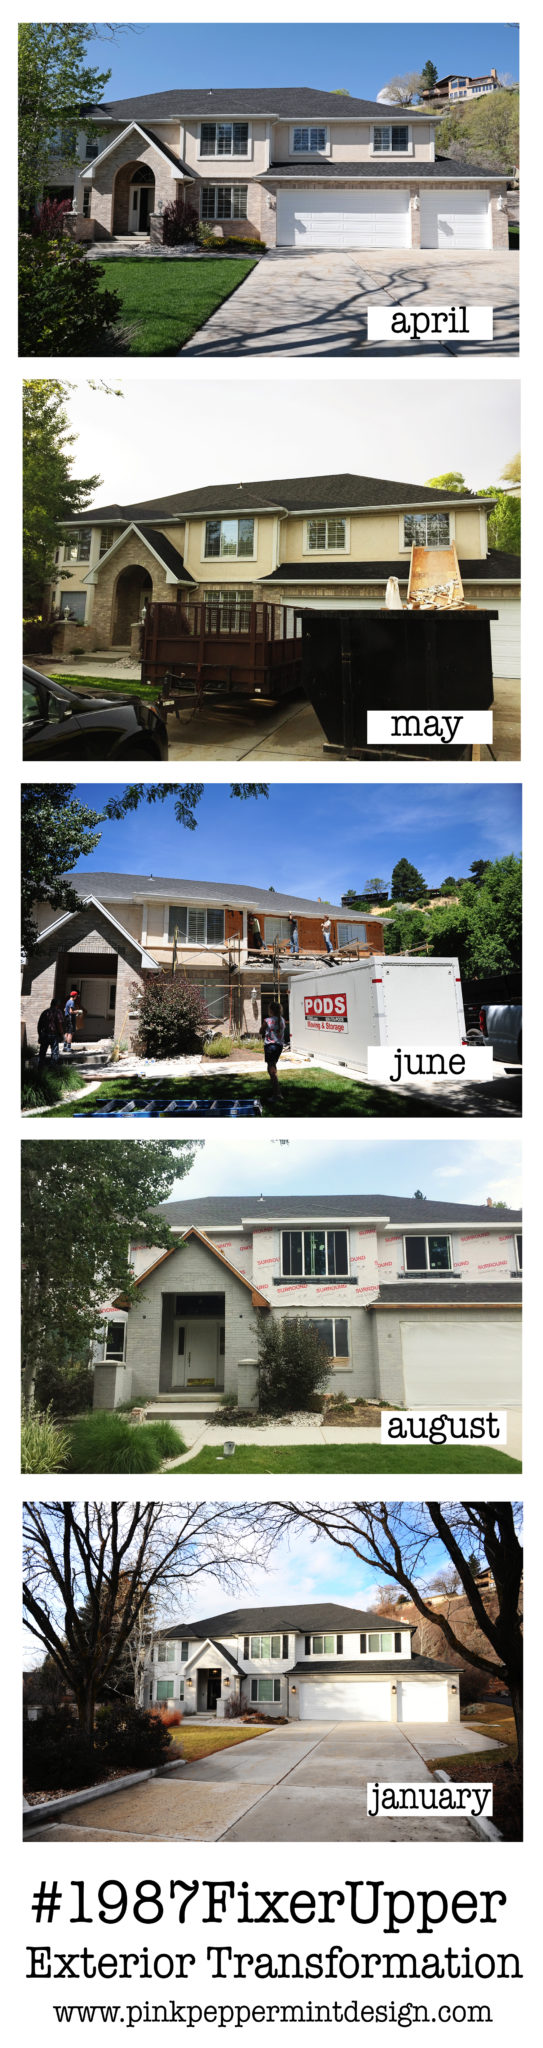 Exterior transformation before and after collage with text 1